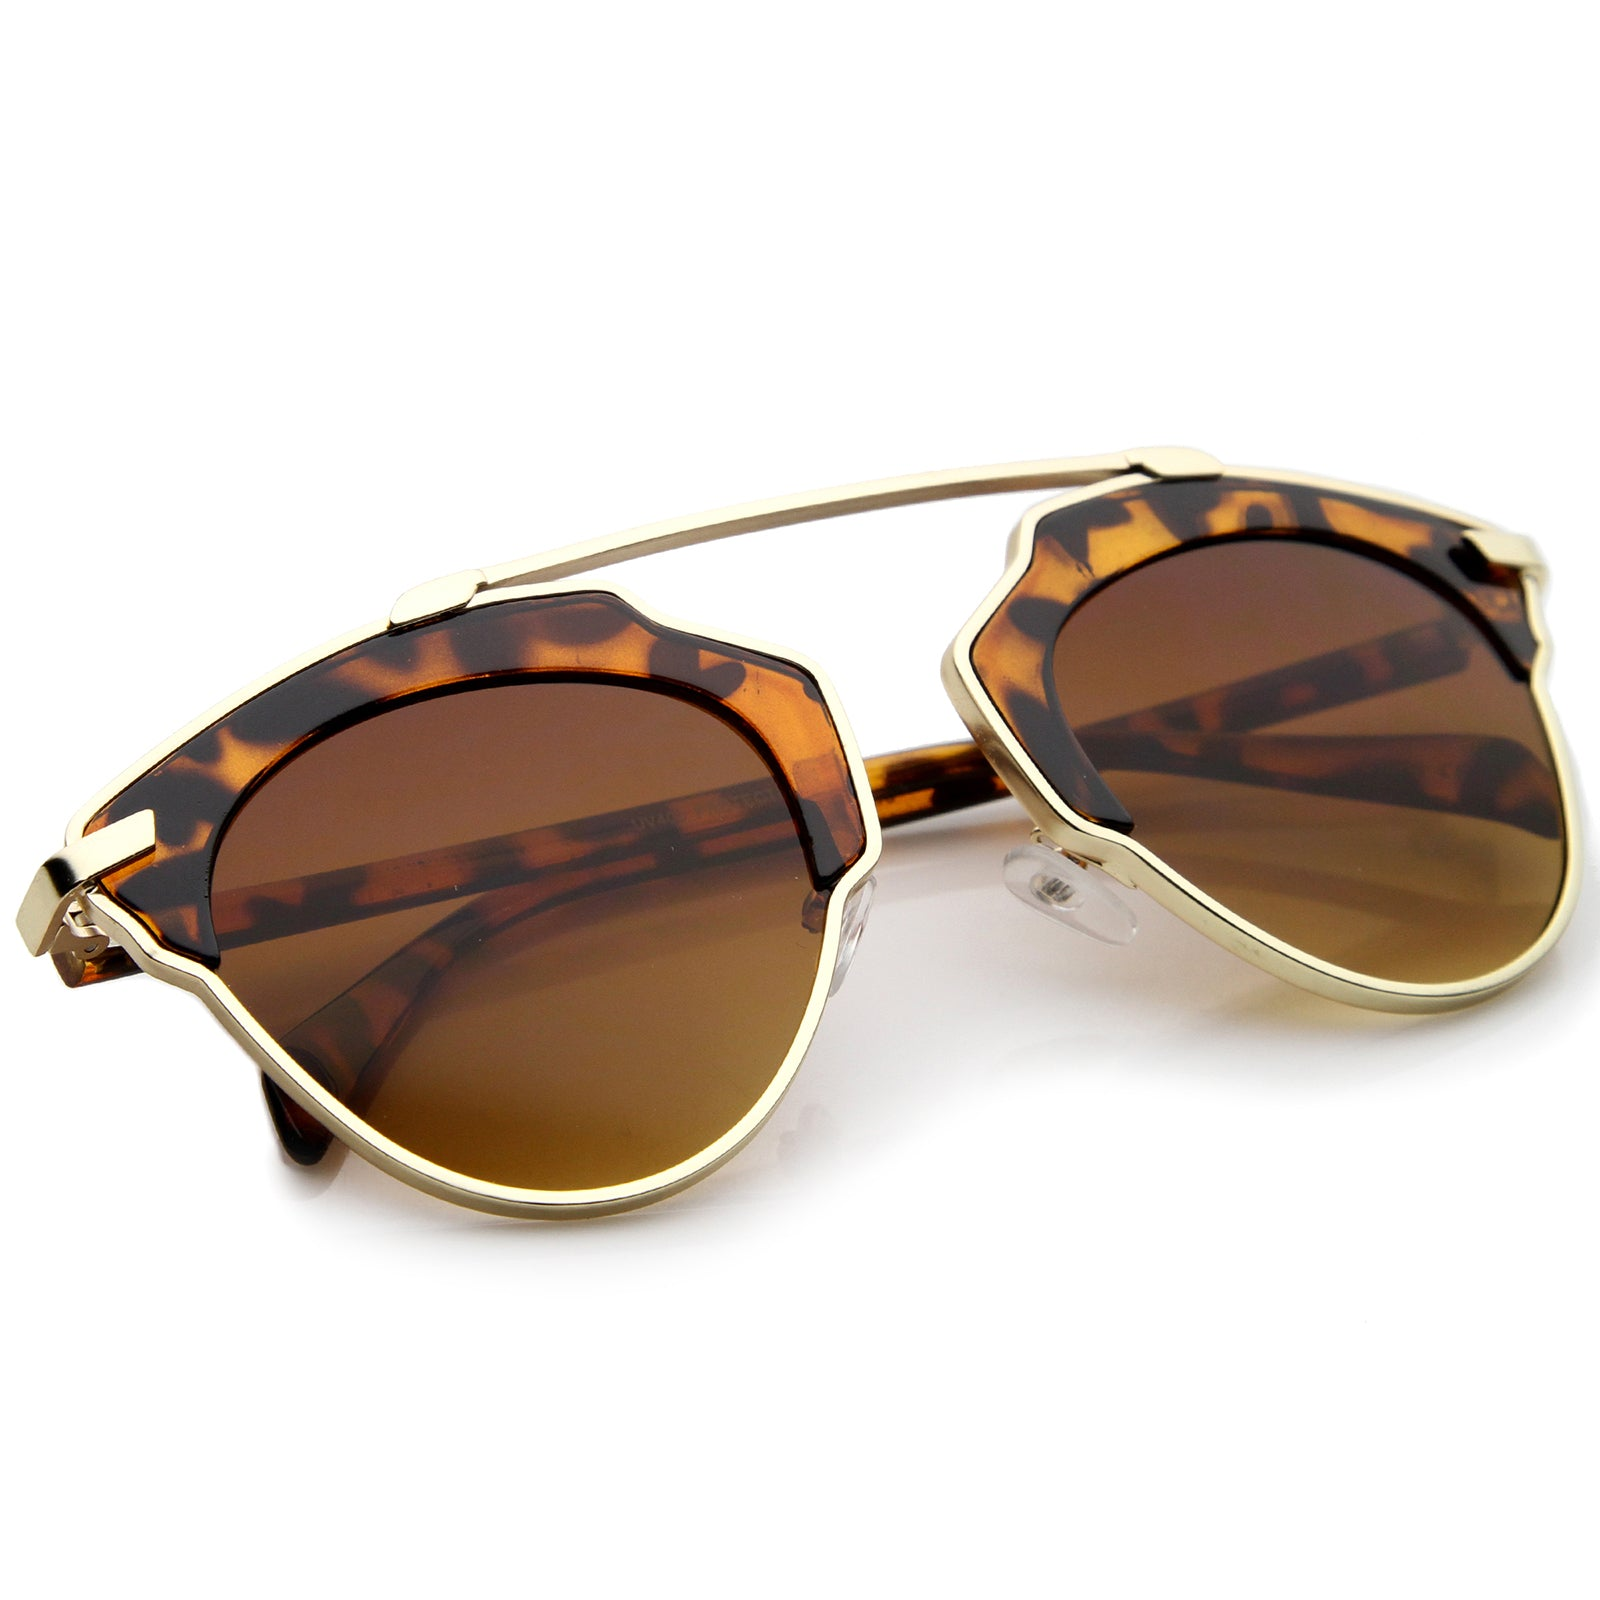 High Fashion Two-Toned Pantos Crossbar Tinted Lens Aviator Sunglasses 52mm - sunglass.la - 4